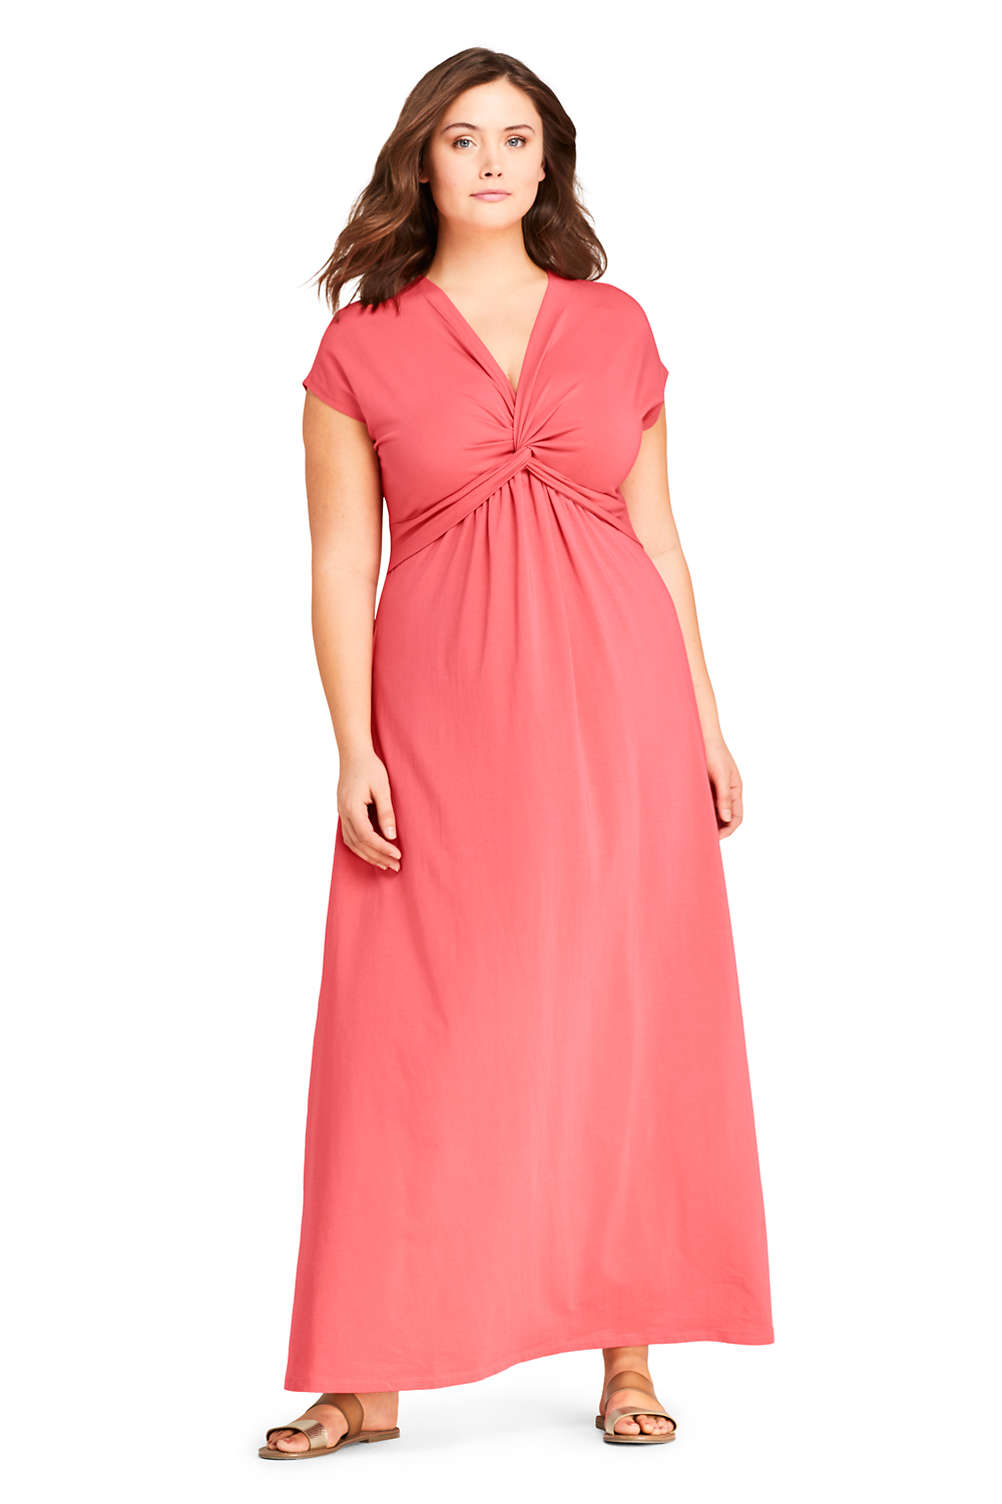 Womens Plus Size Cotton Maxi Dresses - Data Dynamic AG